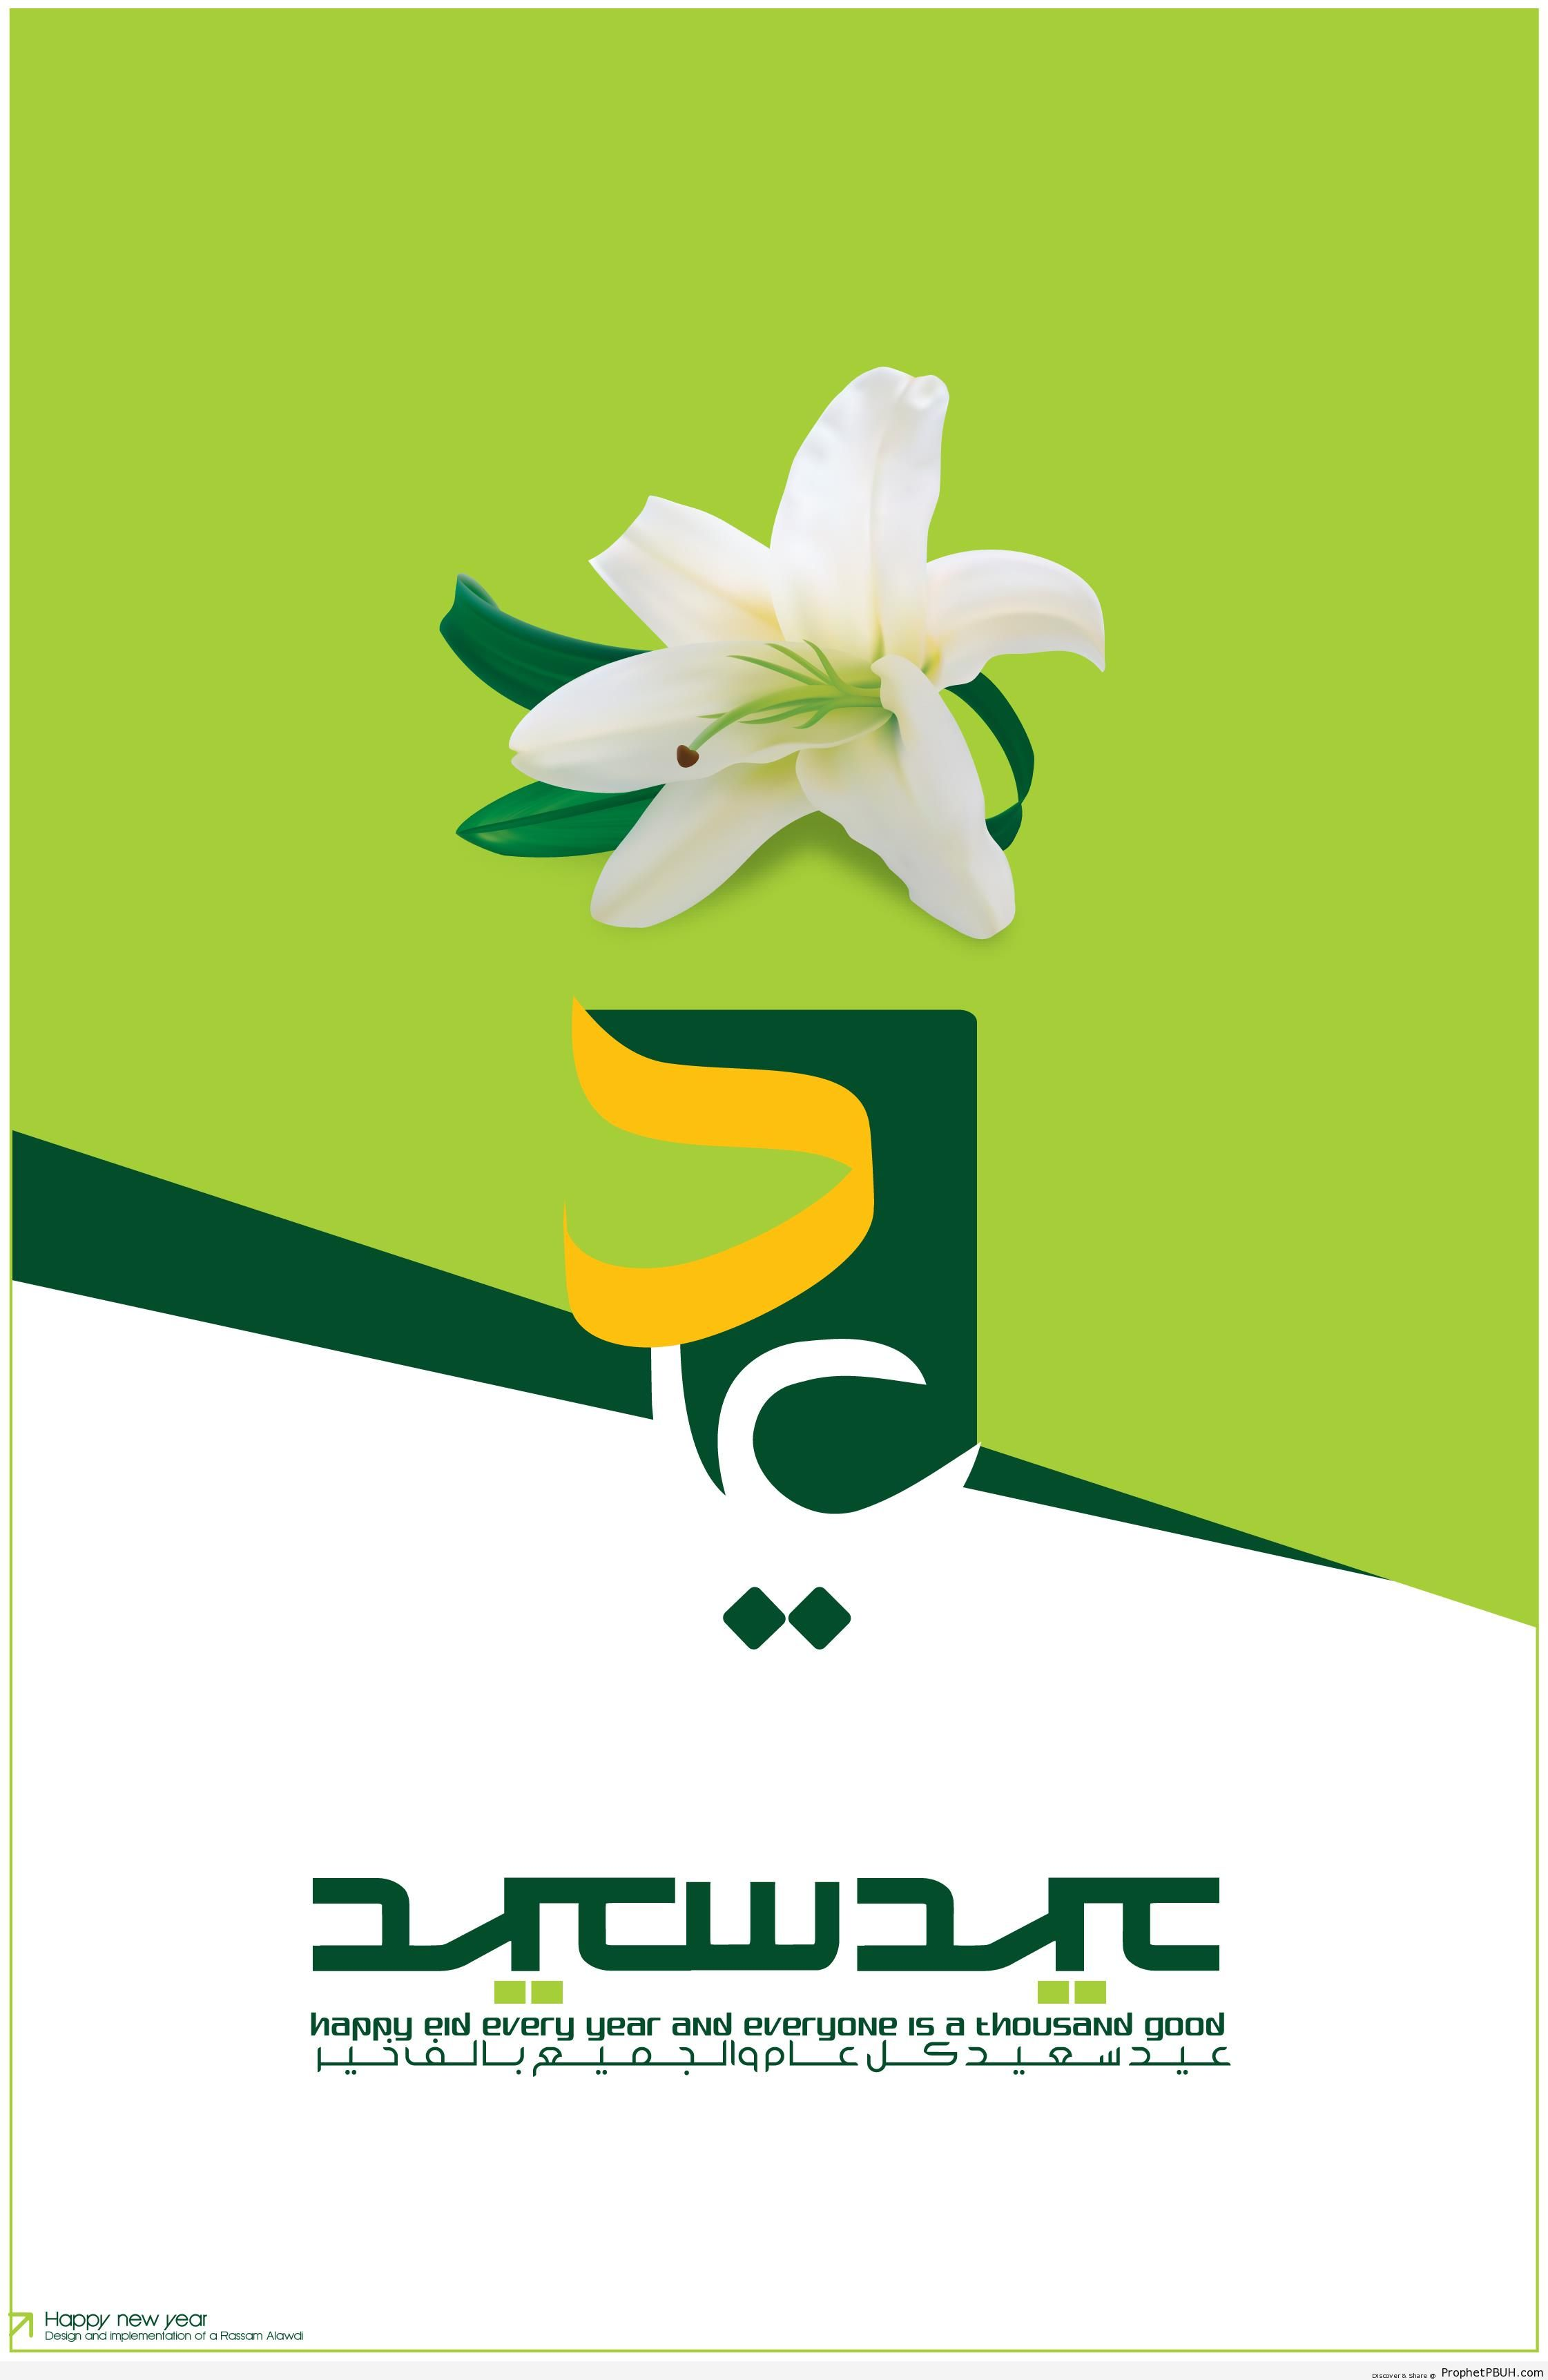 Happy Eid Greeting With Flower On White And Green Background Eid